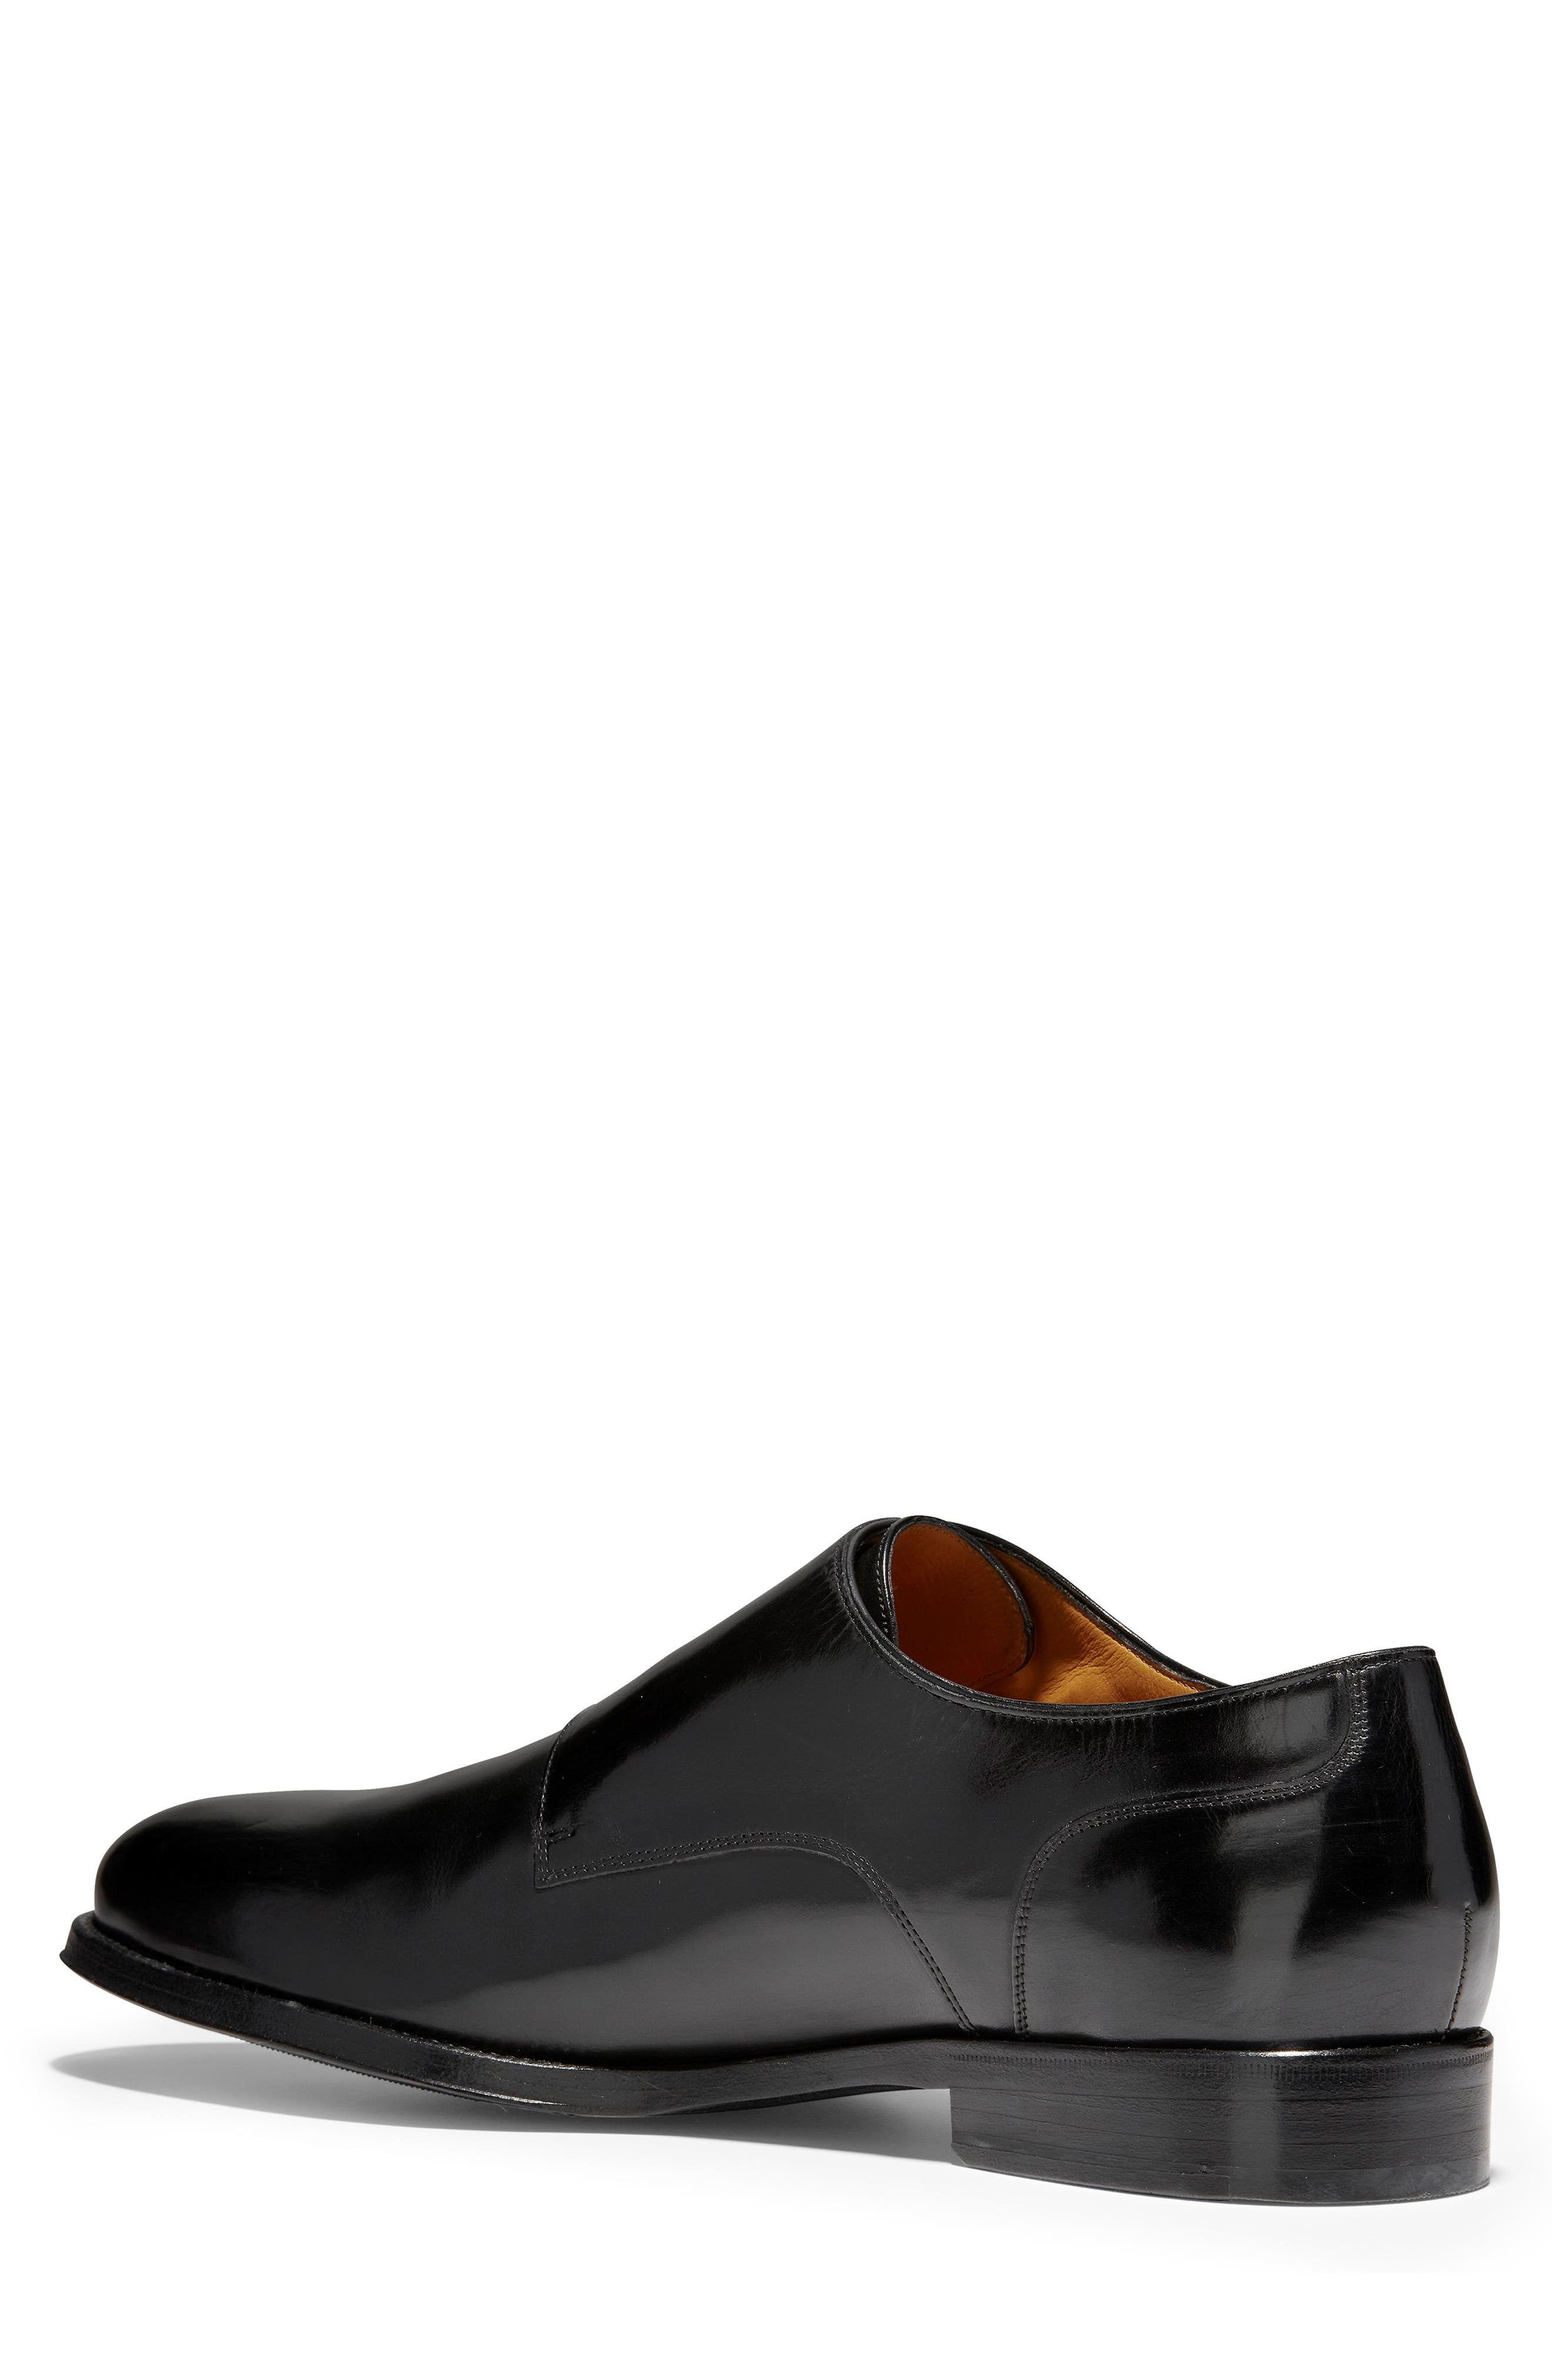 COLE HAAN, American Classics Gramercy Double Strap Monk Shoe, Alternate thumbnail 2, color, BLACK LEATHER